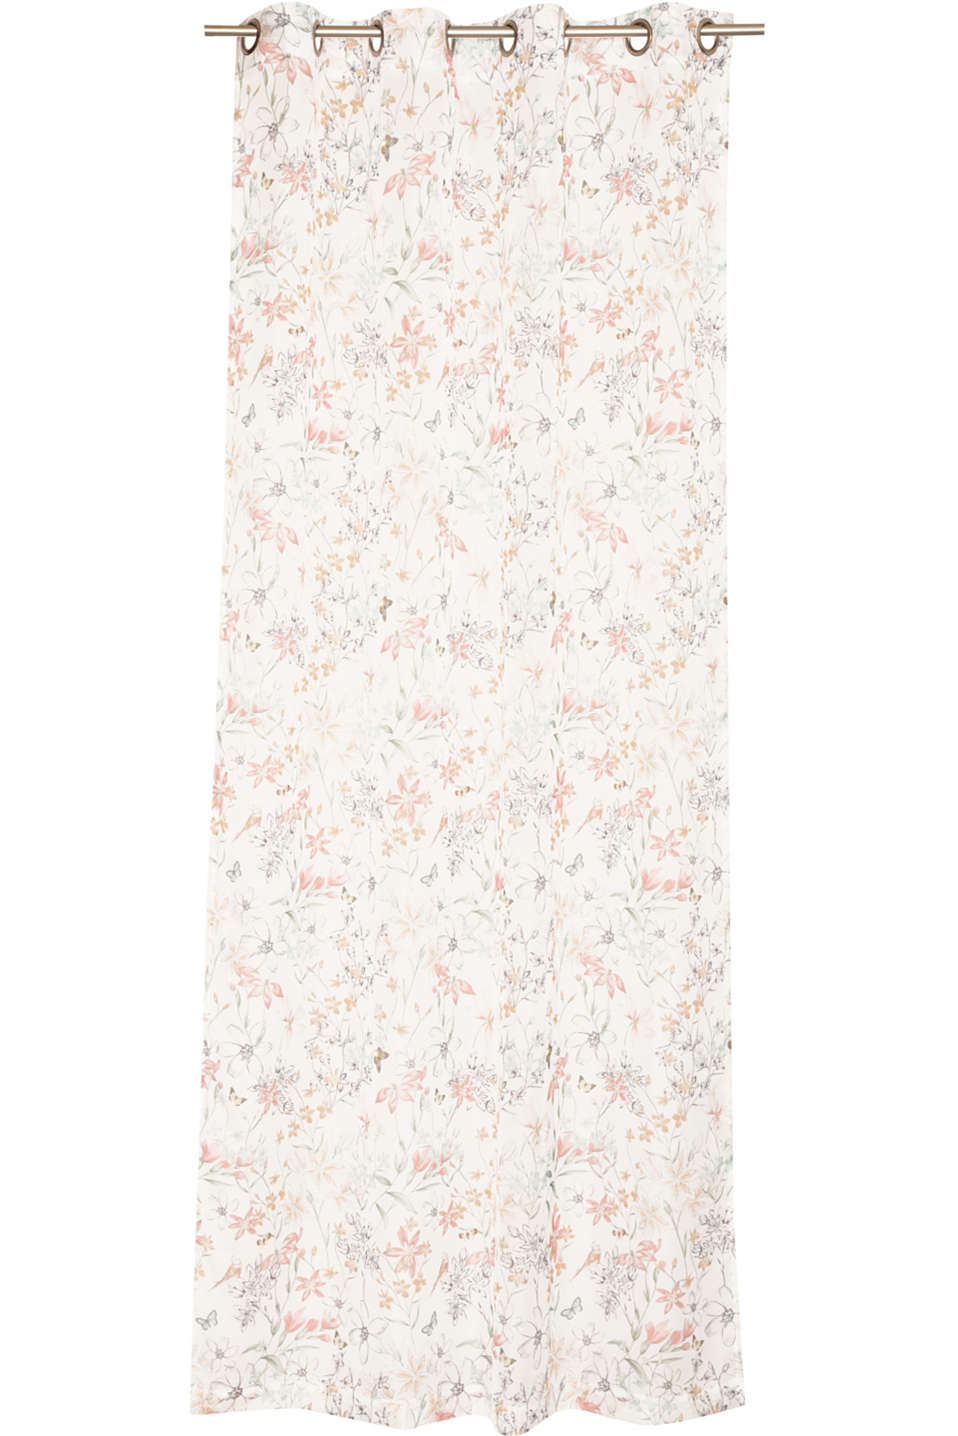 Esprit - Eyelet curtain with a bright floral pattern